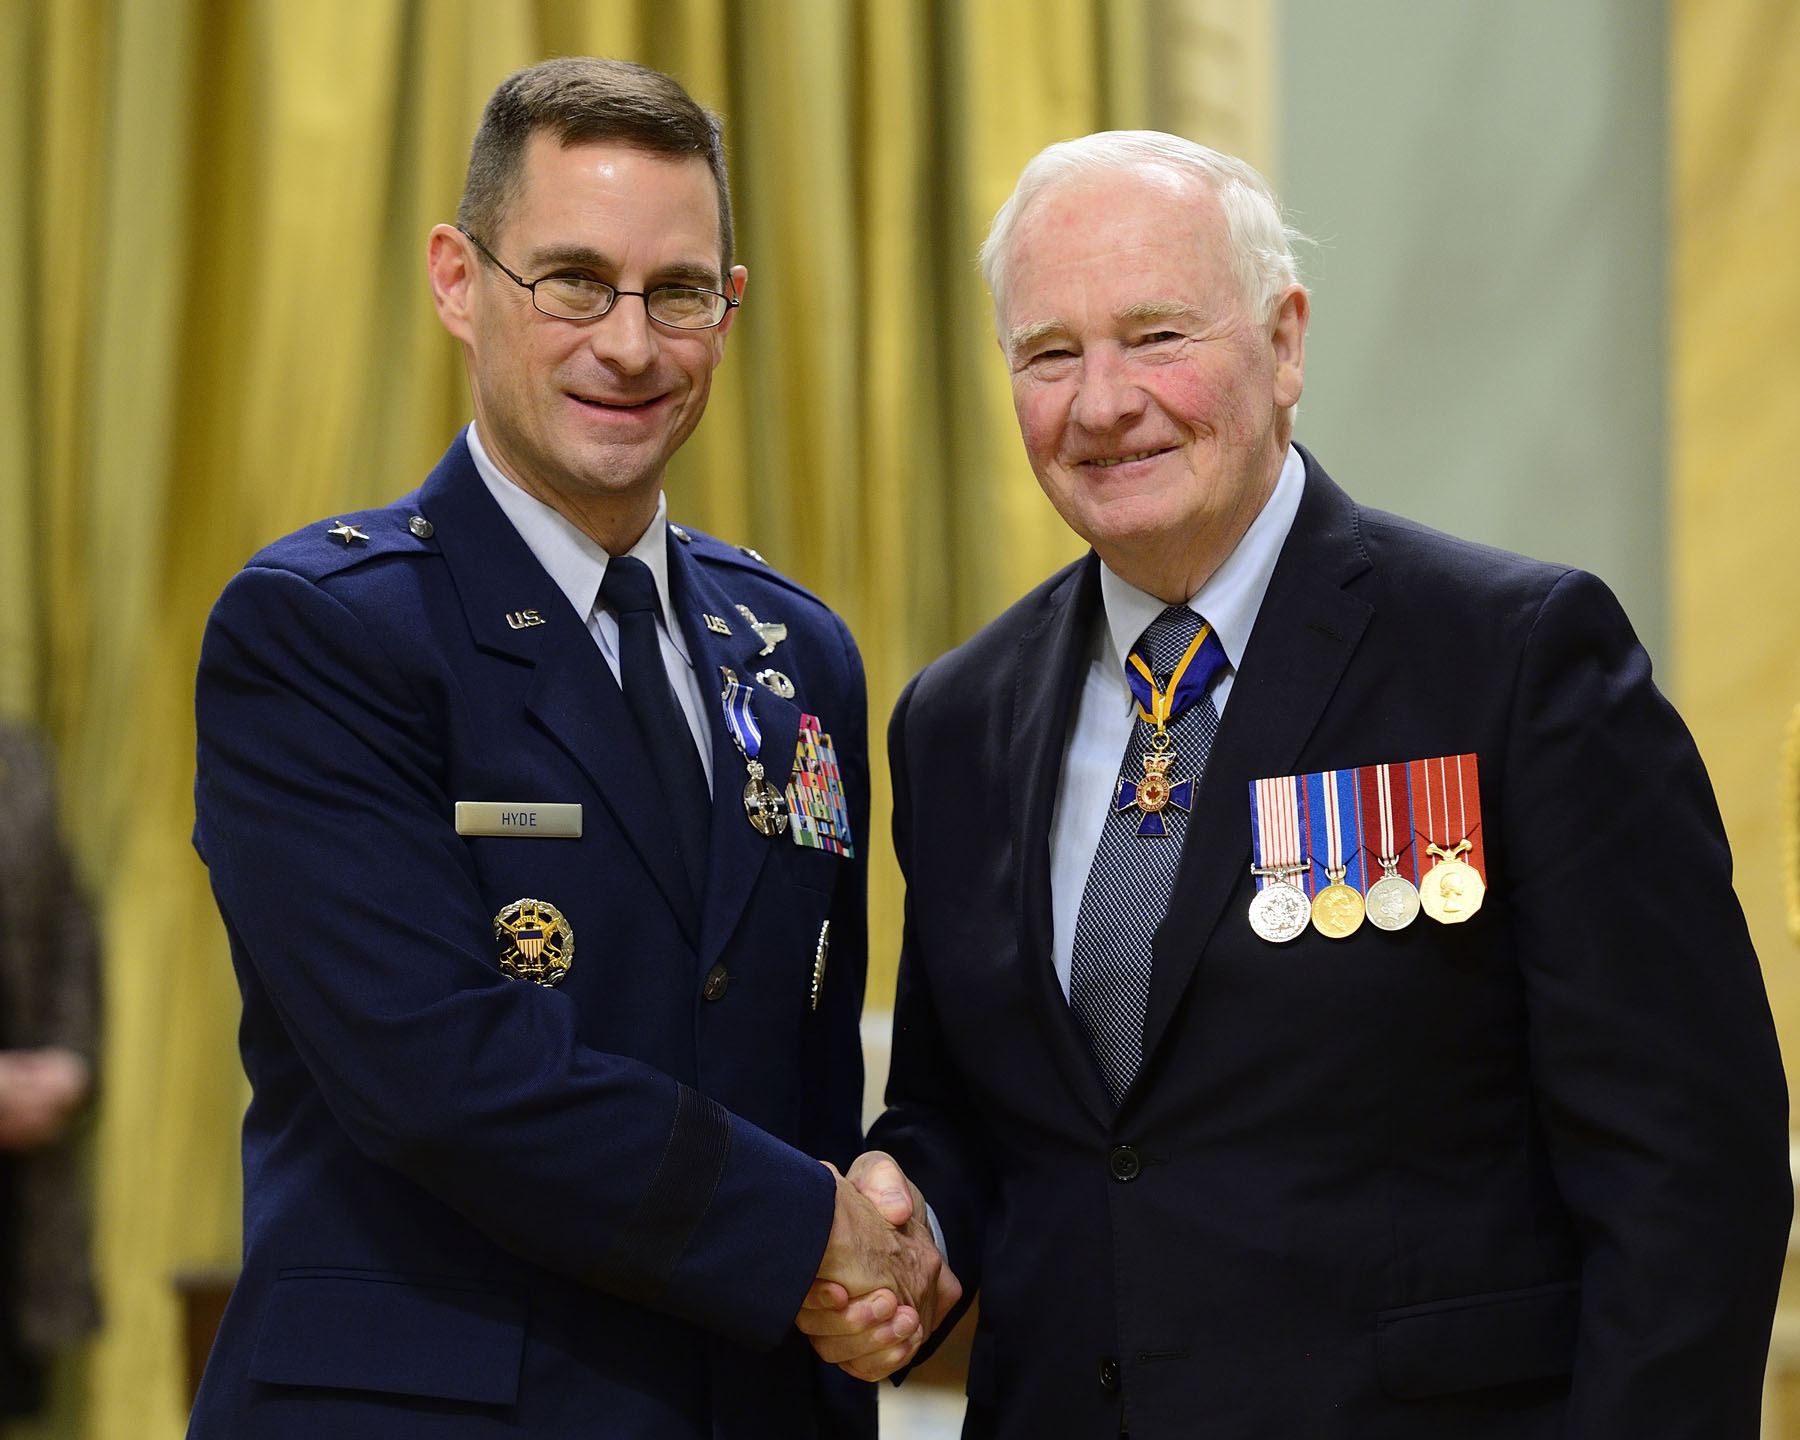 Brigadier-General Cahrles Kevin Hyde, M.S.M. (Ret'd) served as Deputy Combined/Joint Forces Air Component commander at 1 Canadian Air Division/Canadian NORAD Region Headquarters in Winnipeg, Manitoba. Between July 2013 and August 2015, he played a key role in NORAD and in the Canadian Armed Forces' domestic operations and international missions. Brigadier-General Hyde's vast experience and exemplary performance have further enhanced Canada's role in NORAD and in the ongoing pursuit of our North American security goals.